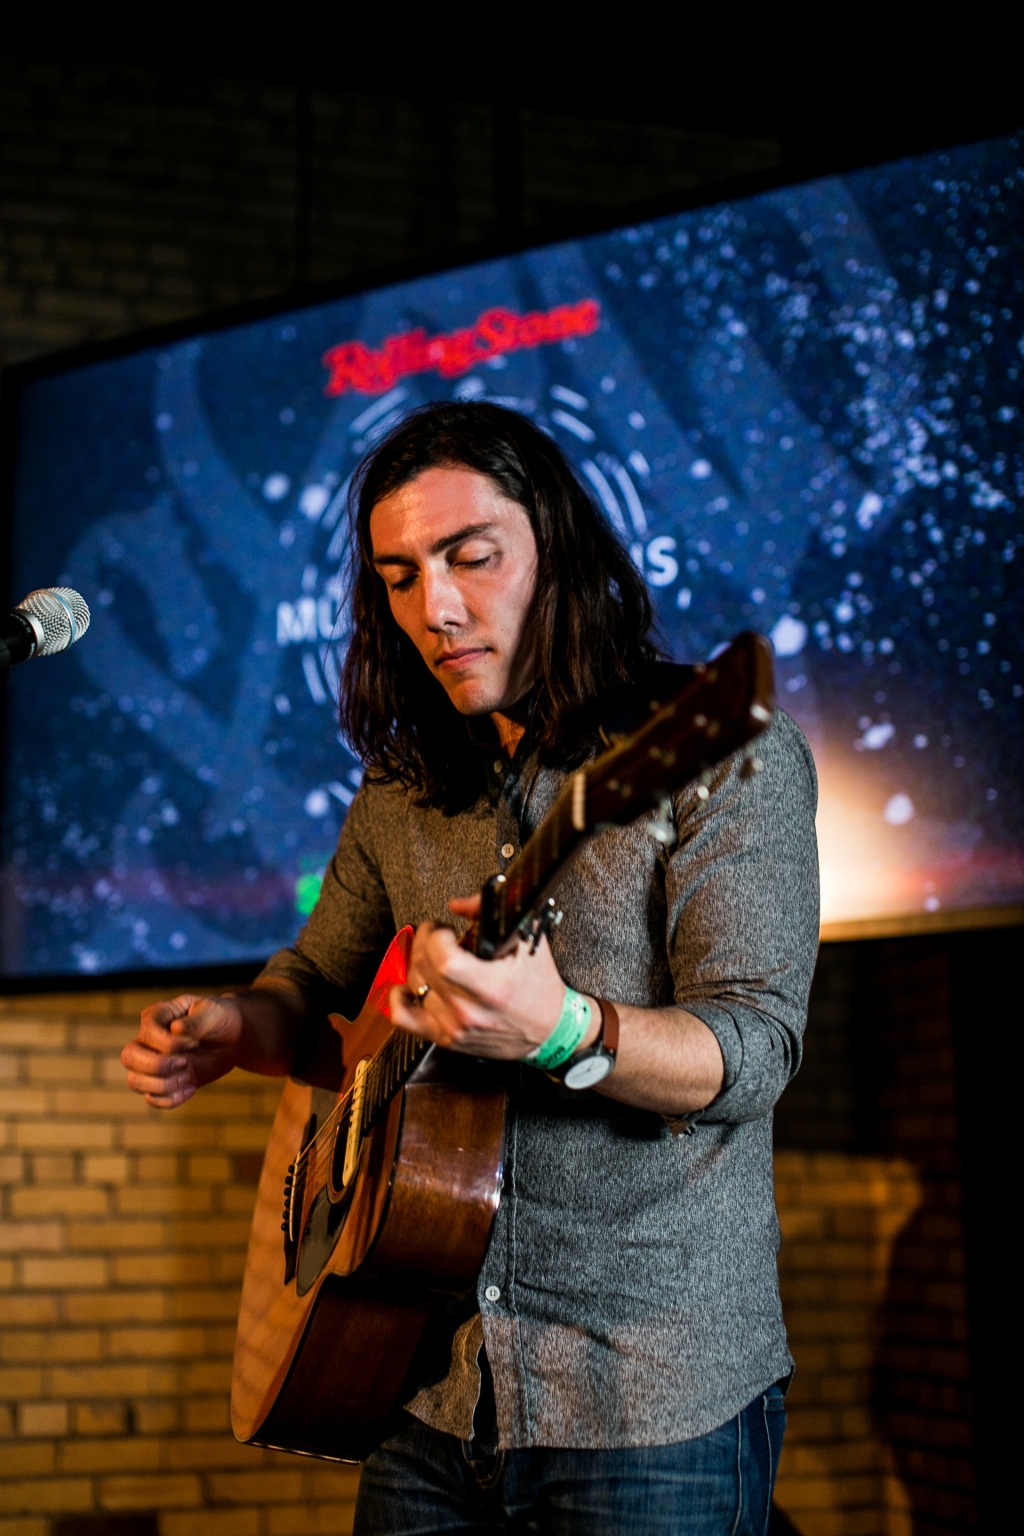 Performance by Seattle-based songwriter, Valley Maker